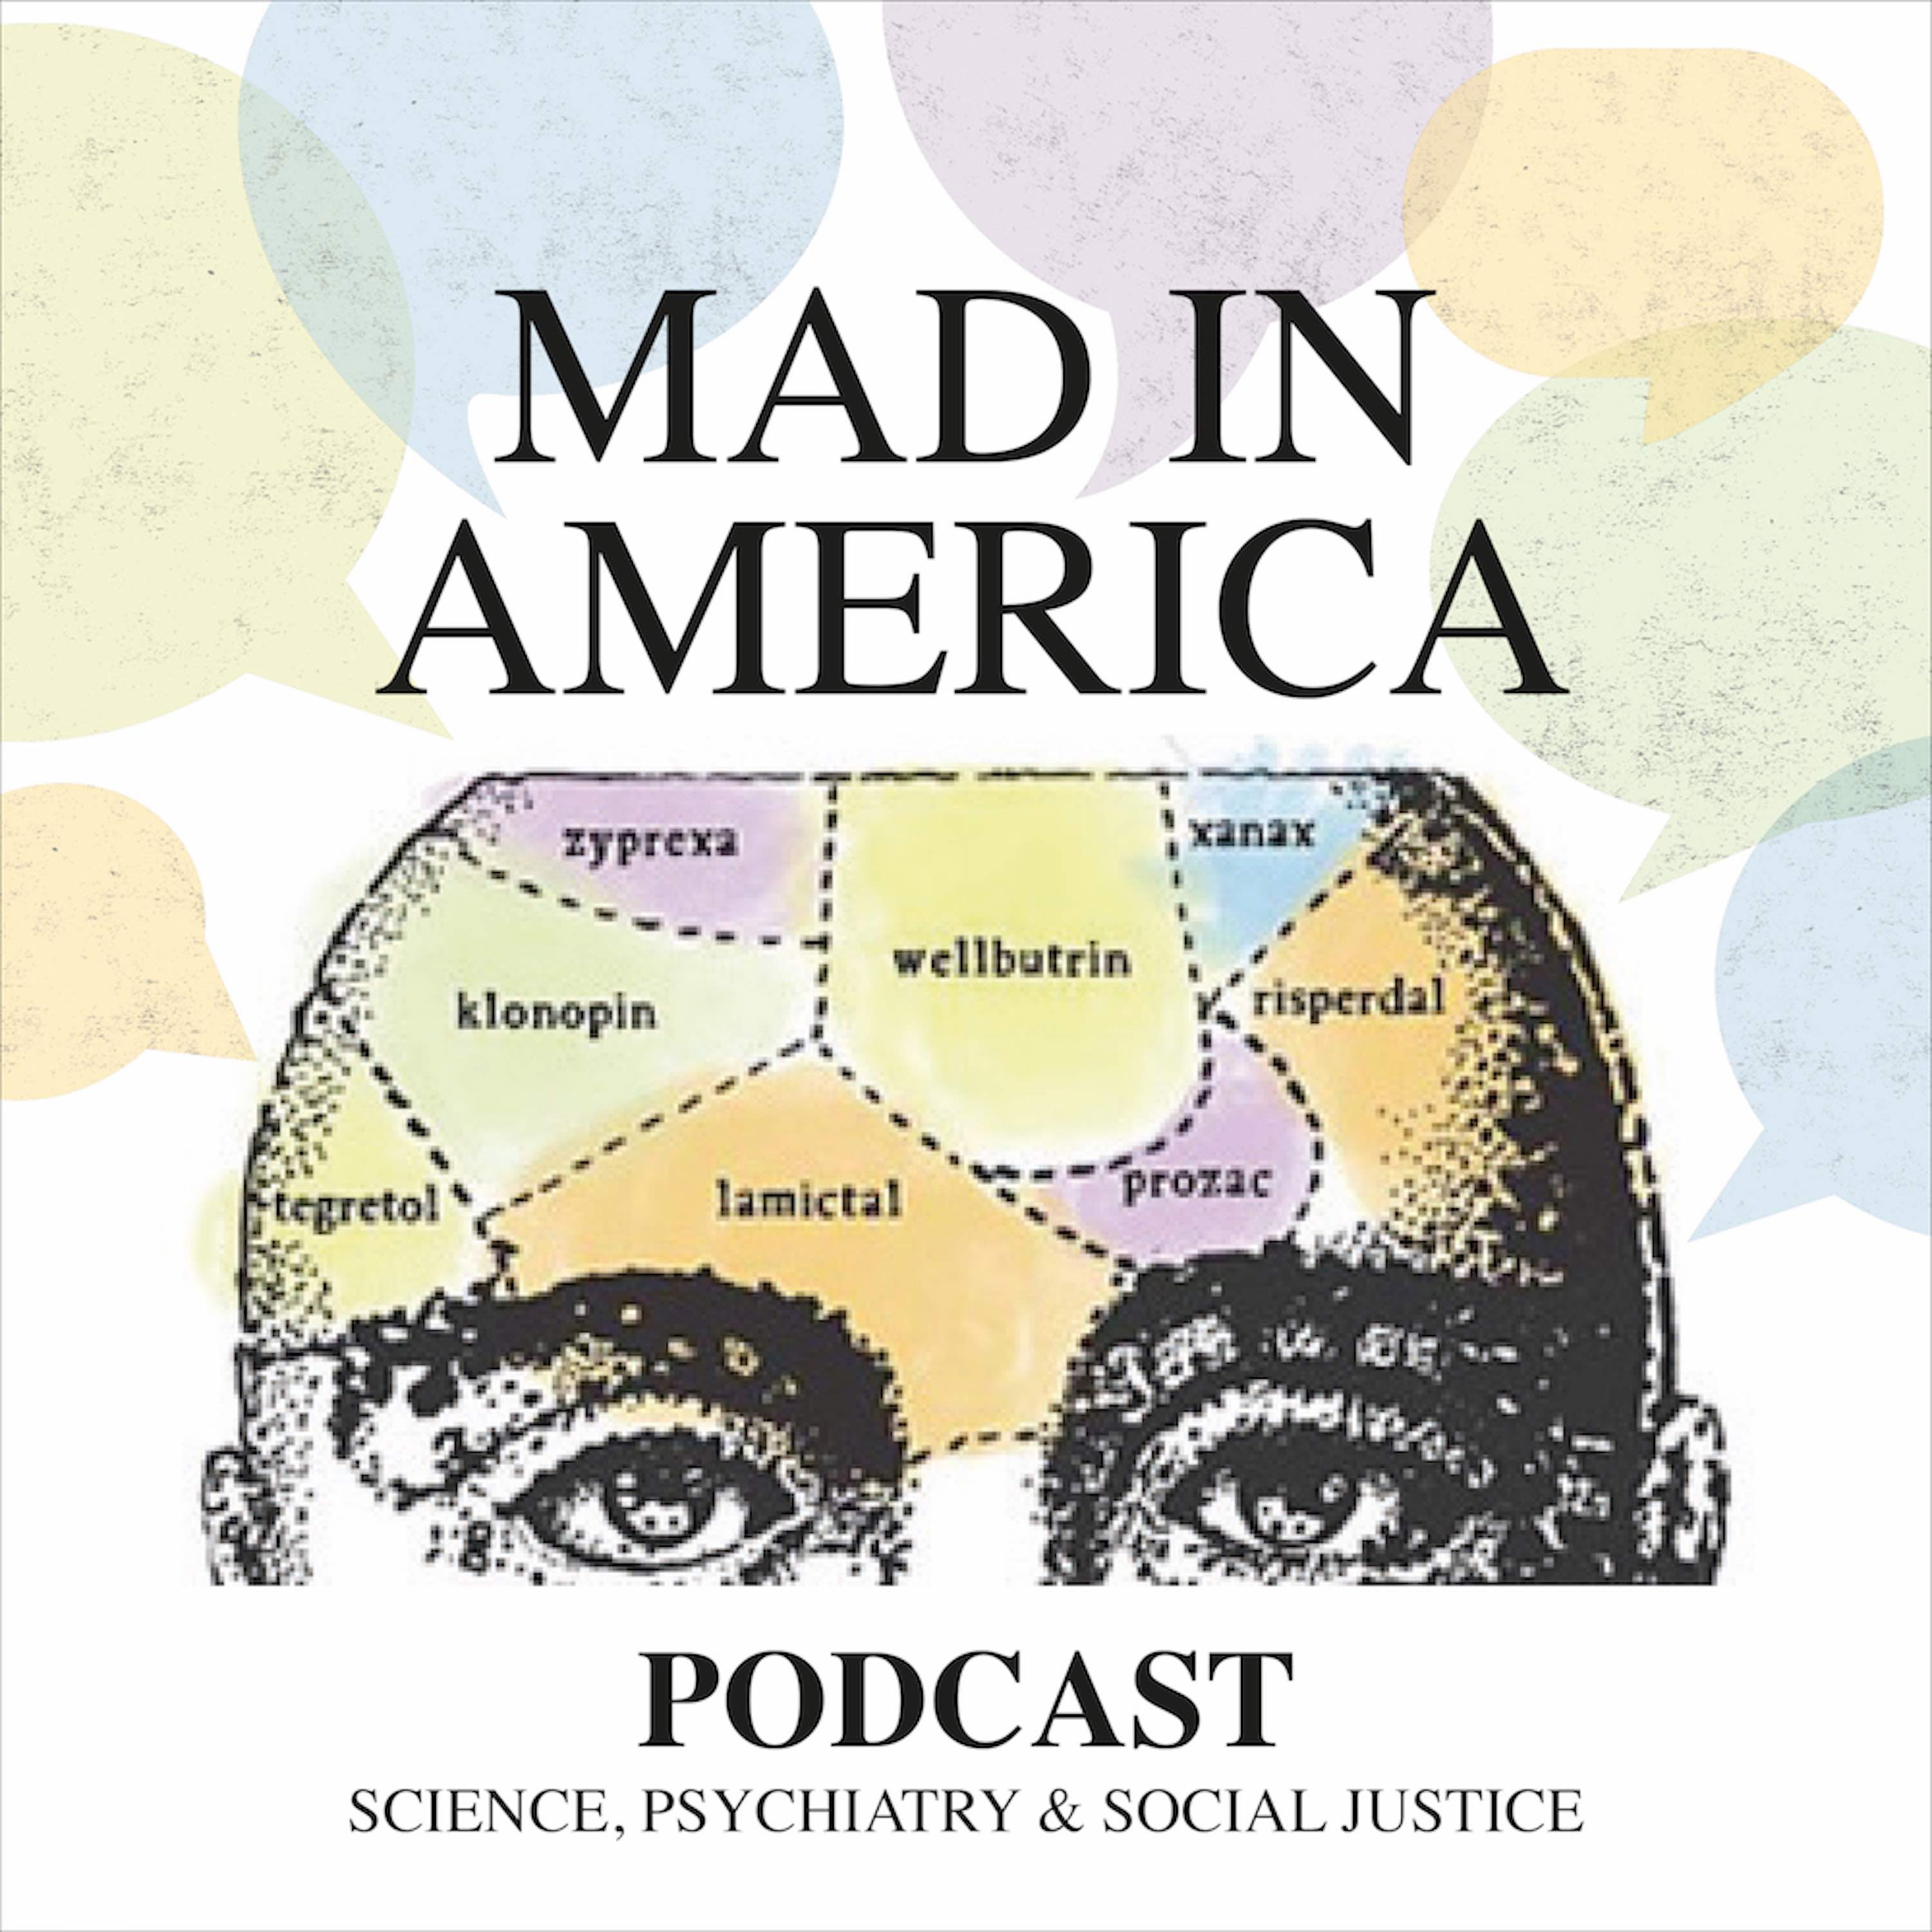 Mad in America: Rethinking Mental Health - John Read - Fighting for the Meaning of Madness